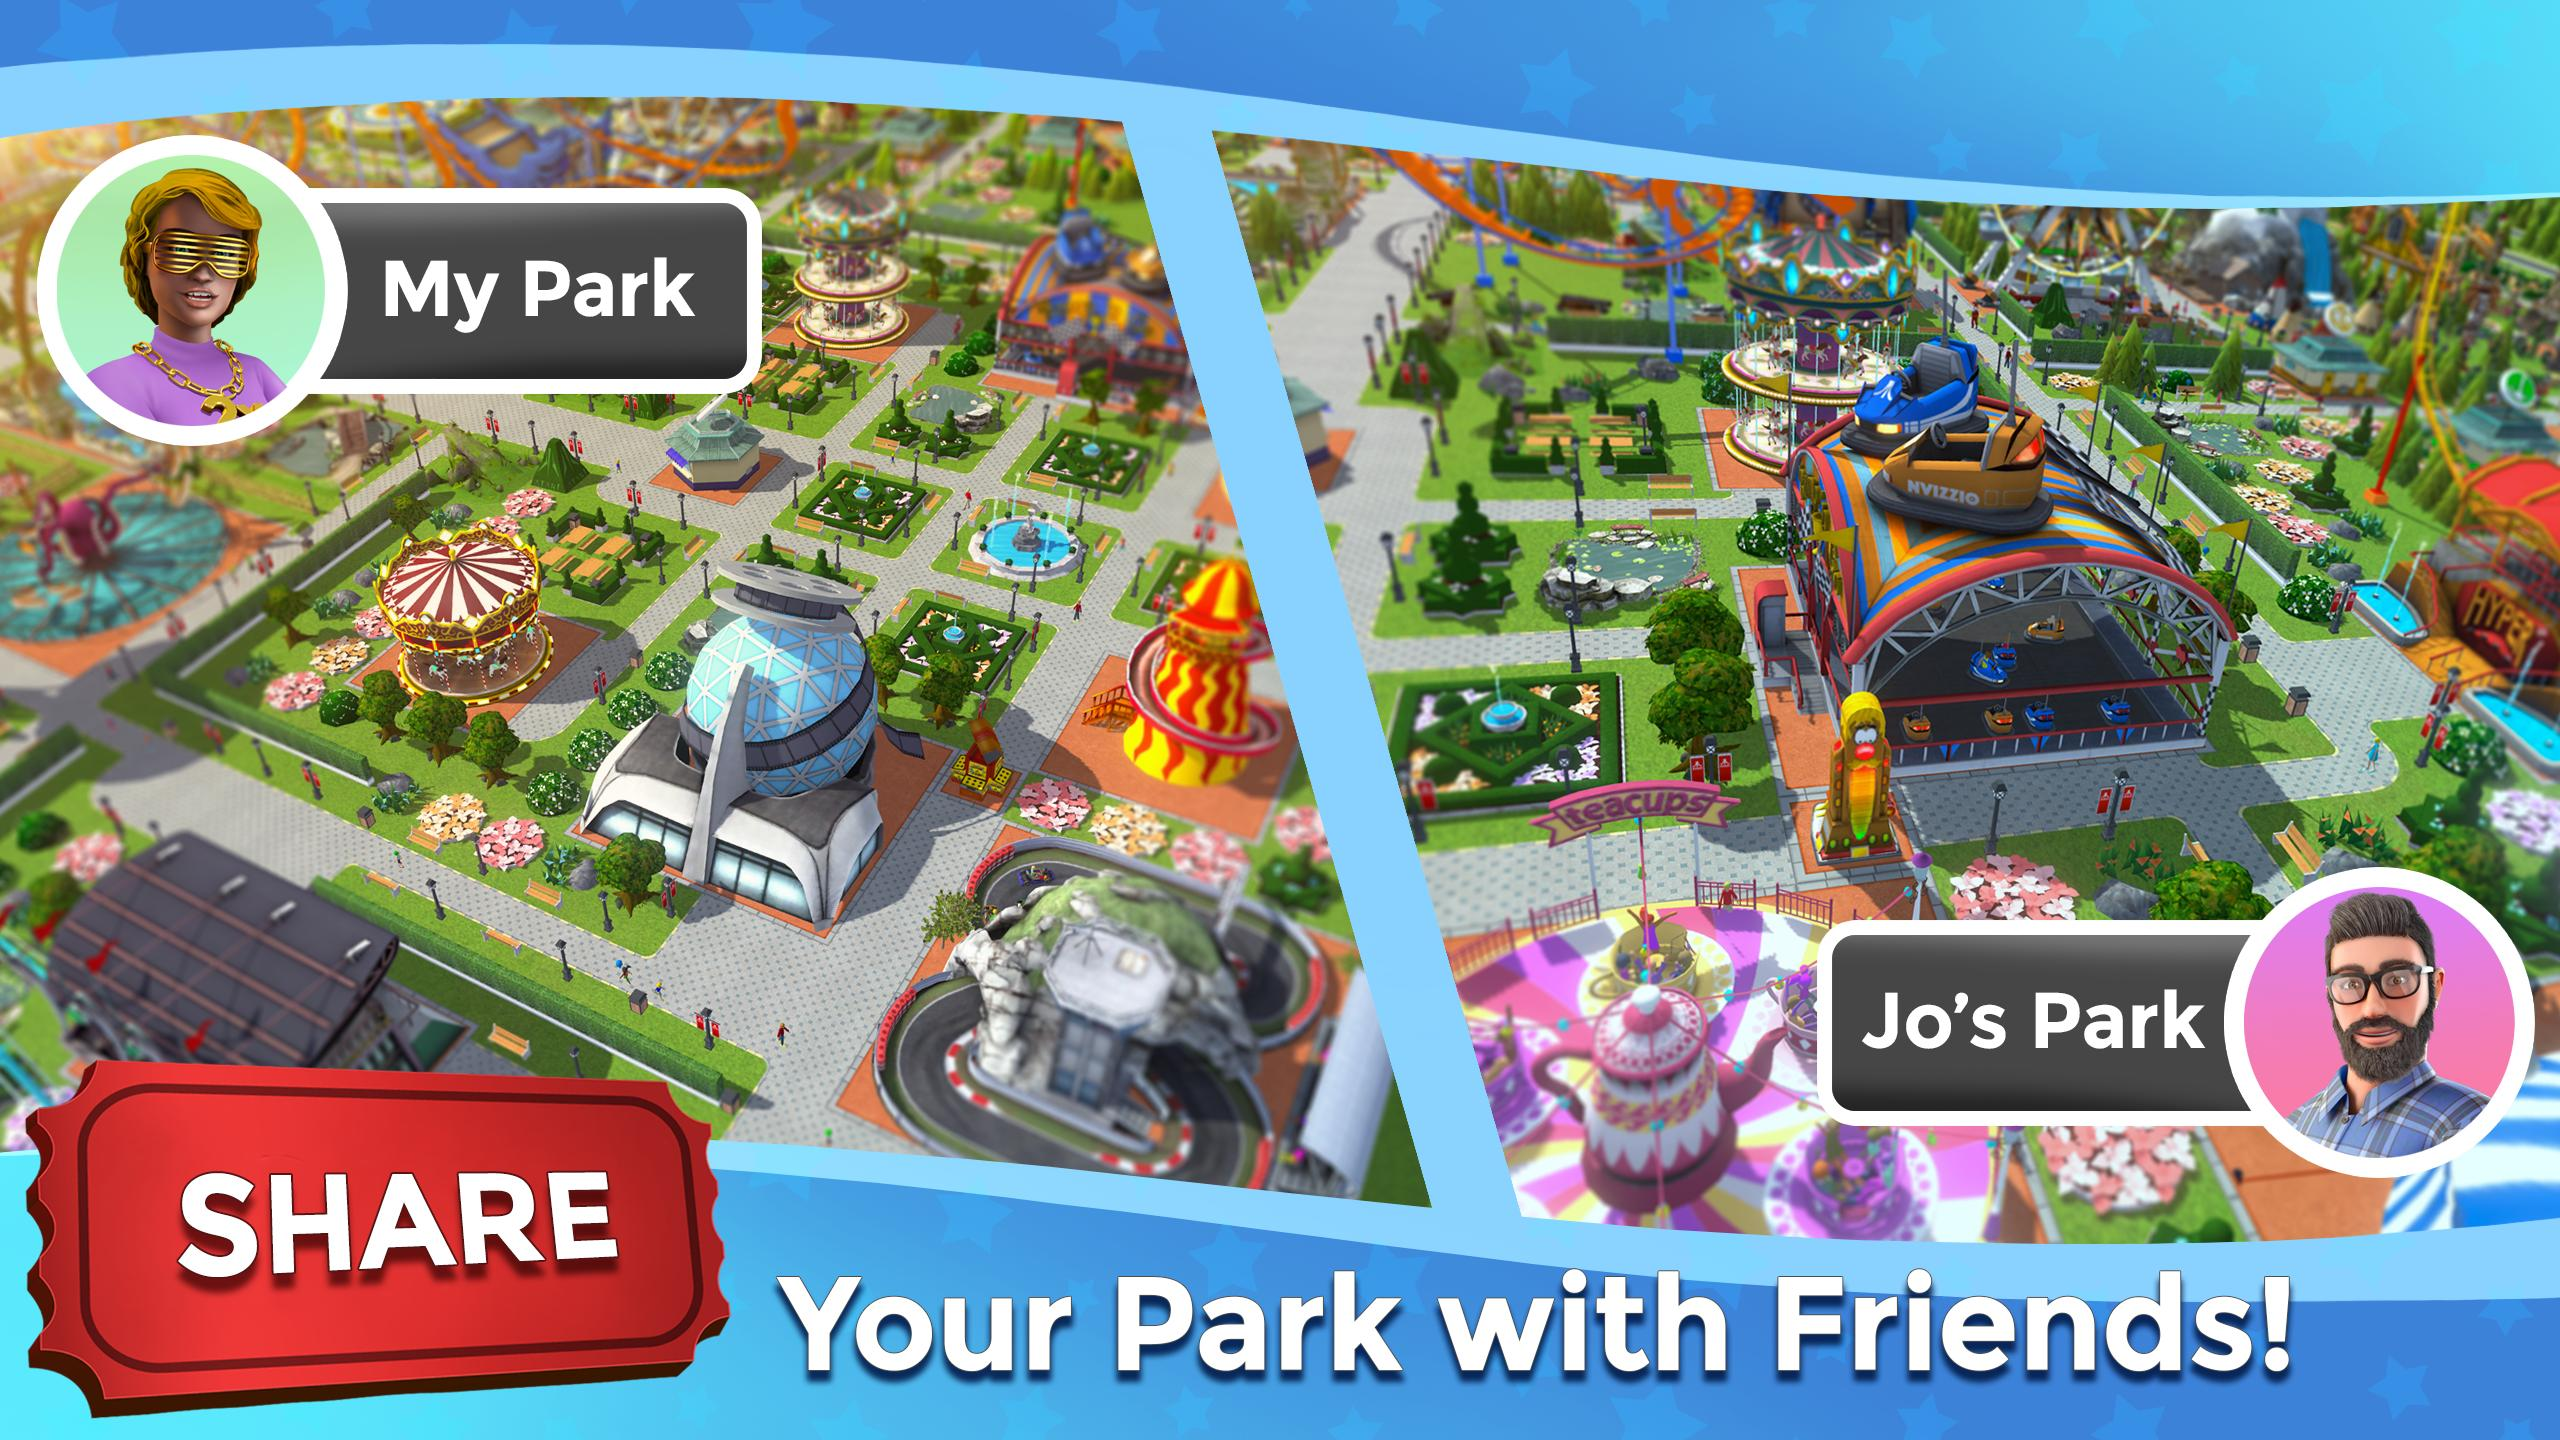 RollerCoaster Tycoon Touch - Build your Theme Park 3.5.0 Screenshot 7